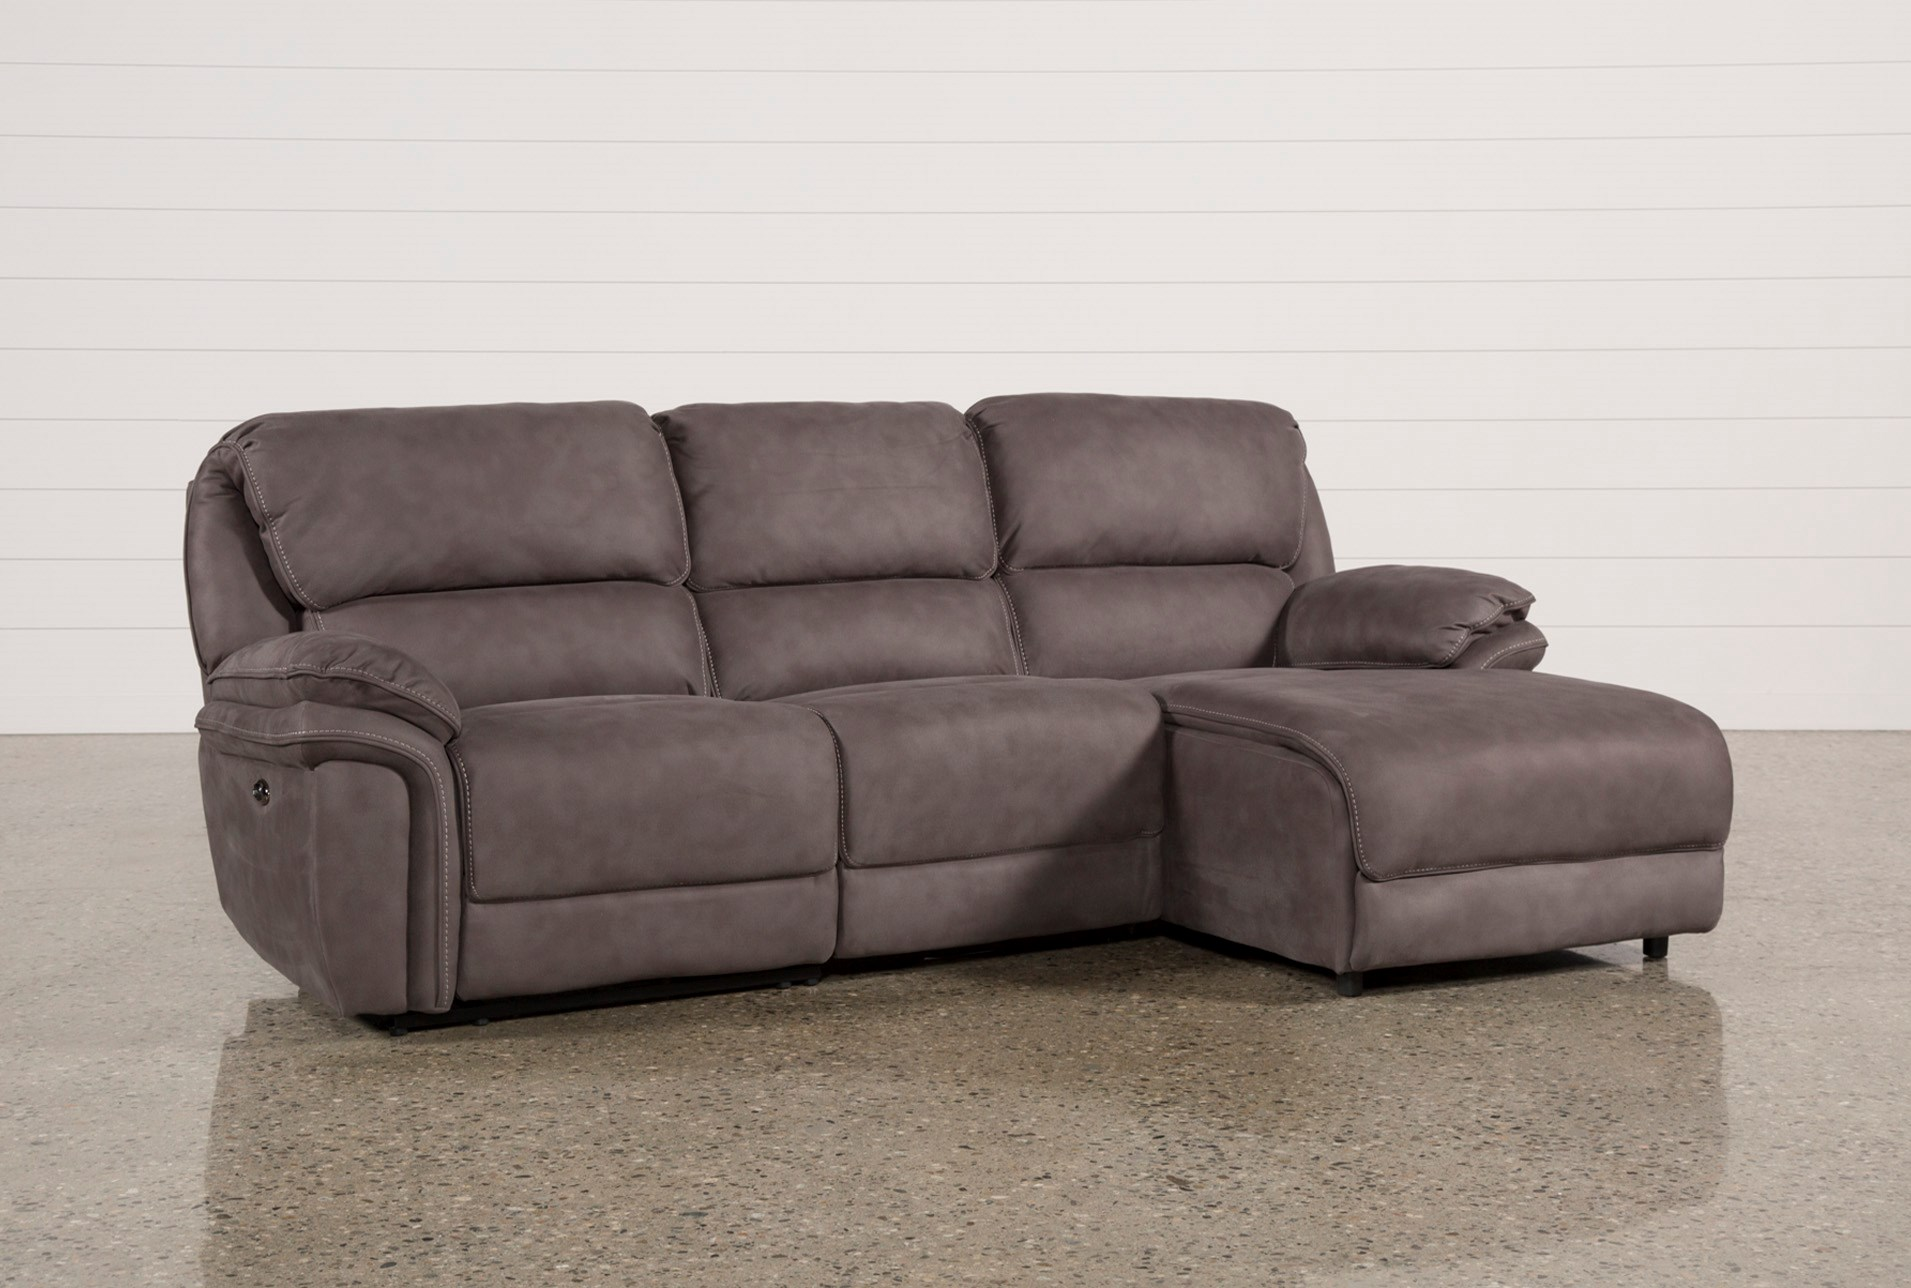 Norfolk Grey 3 Piece Sectional W Raf Chaise Qty 1 Has Been Successfully Added To Your Cart